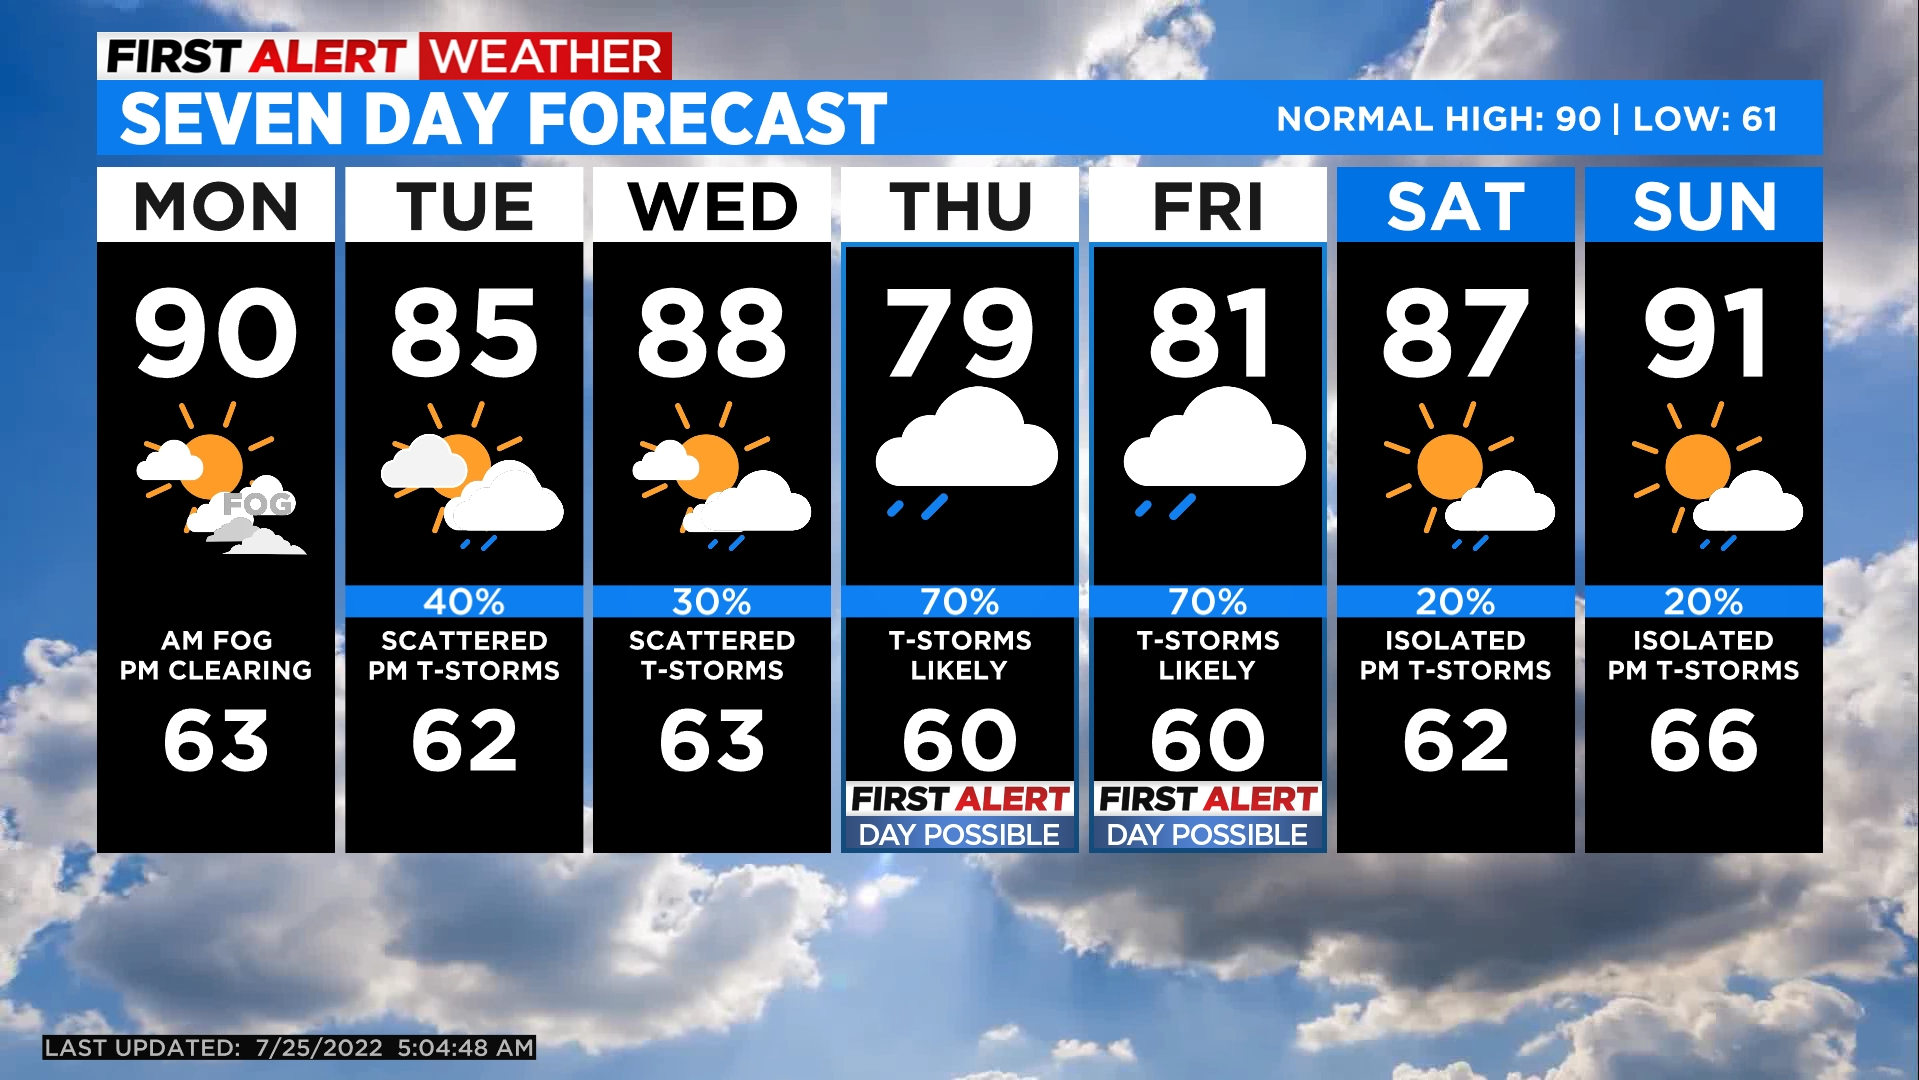 5day Cool Start Before Warming Trend